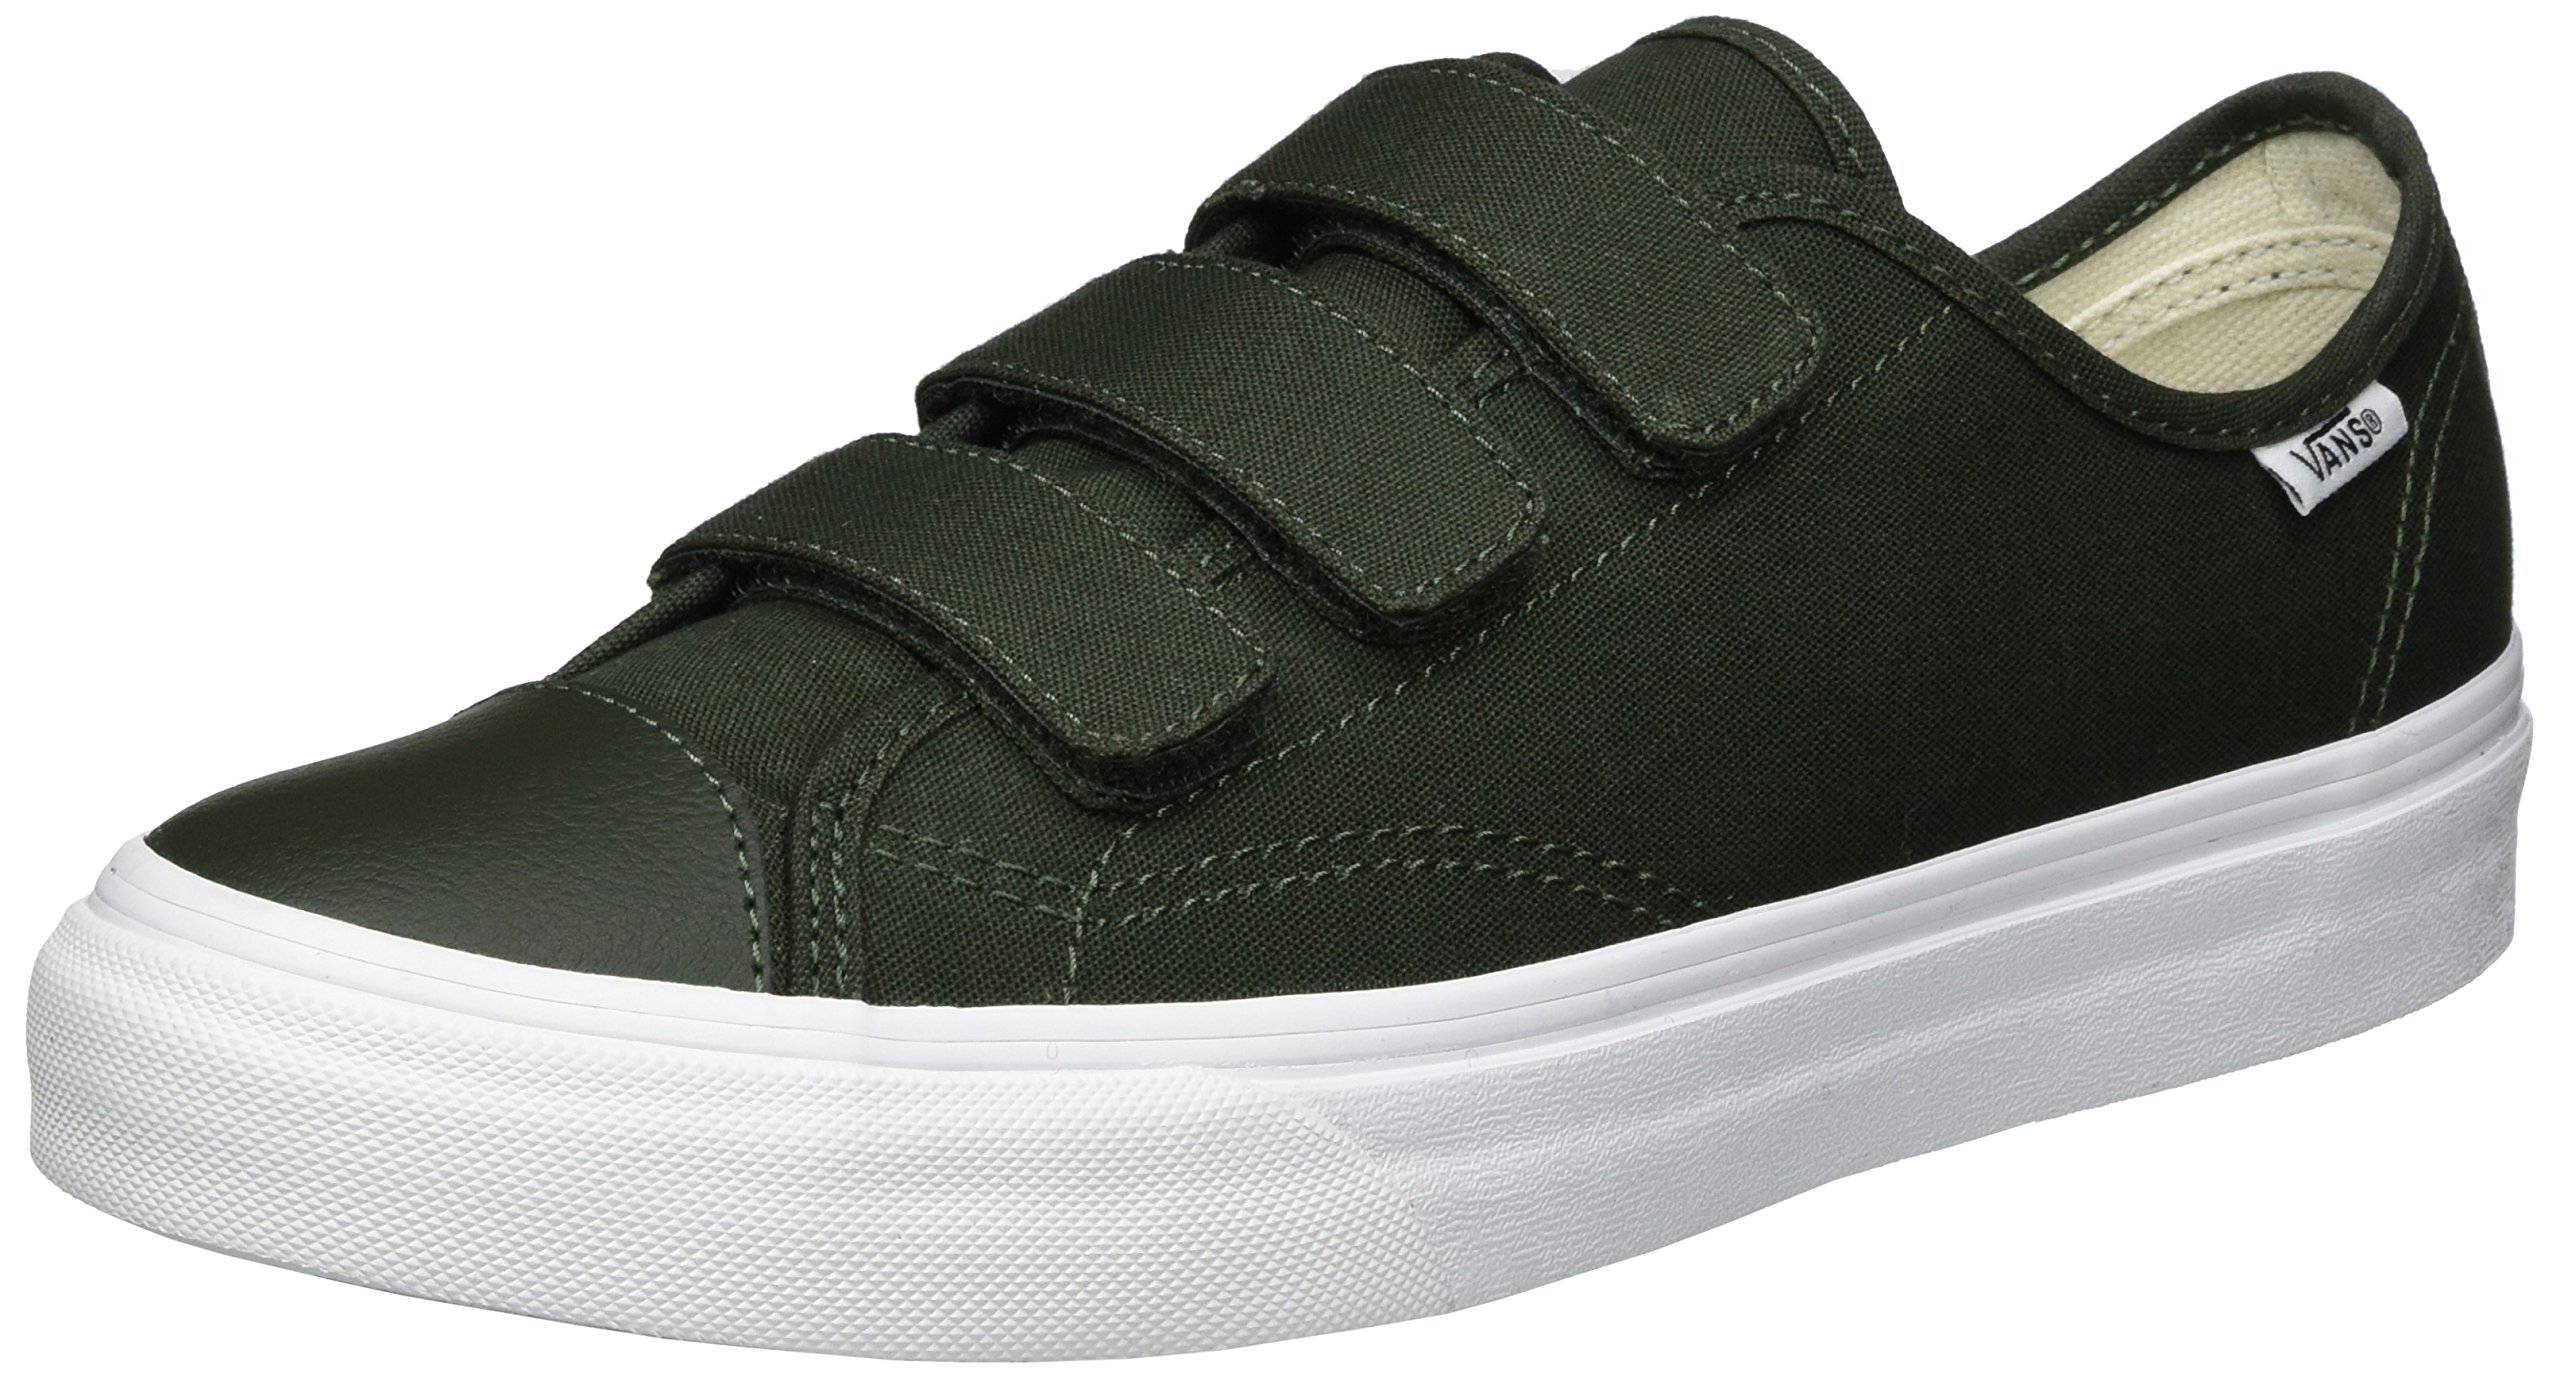 Vans Unisex Style 23 V Green Canvas Skate Shoe 10